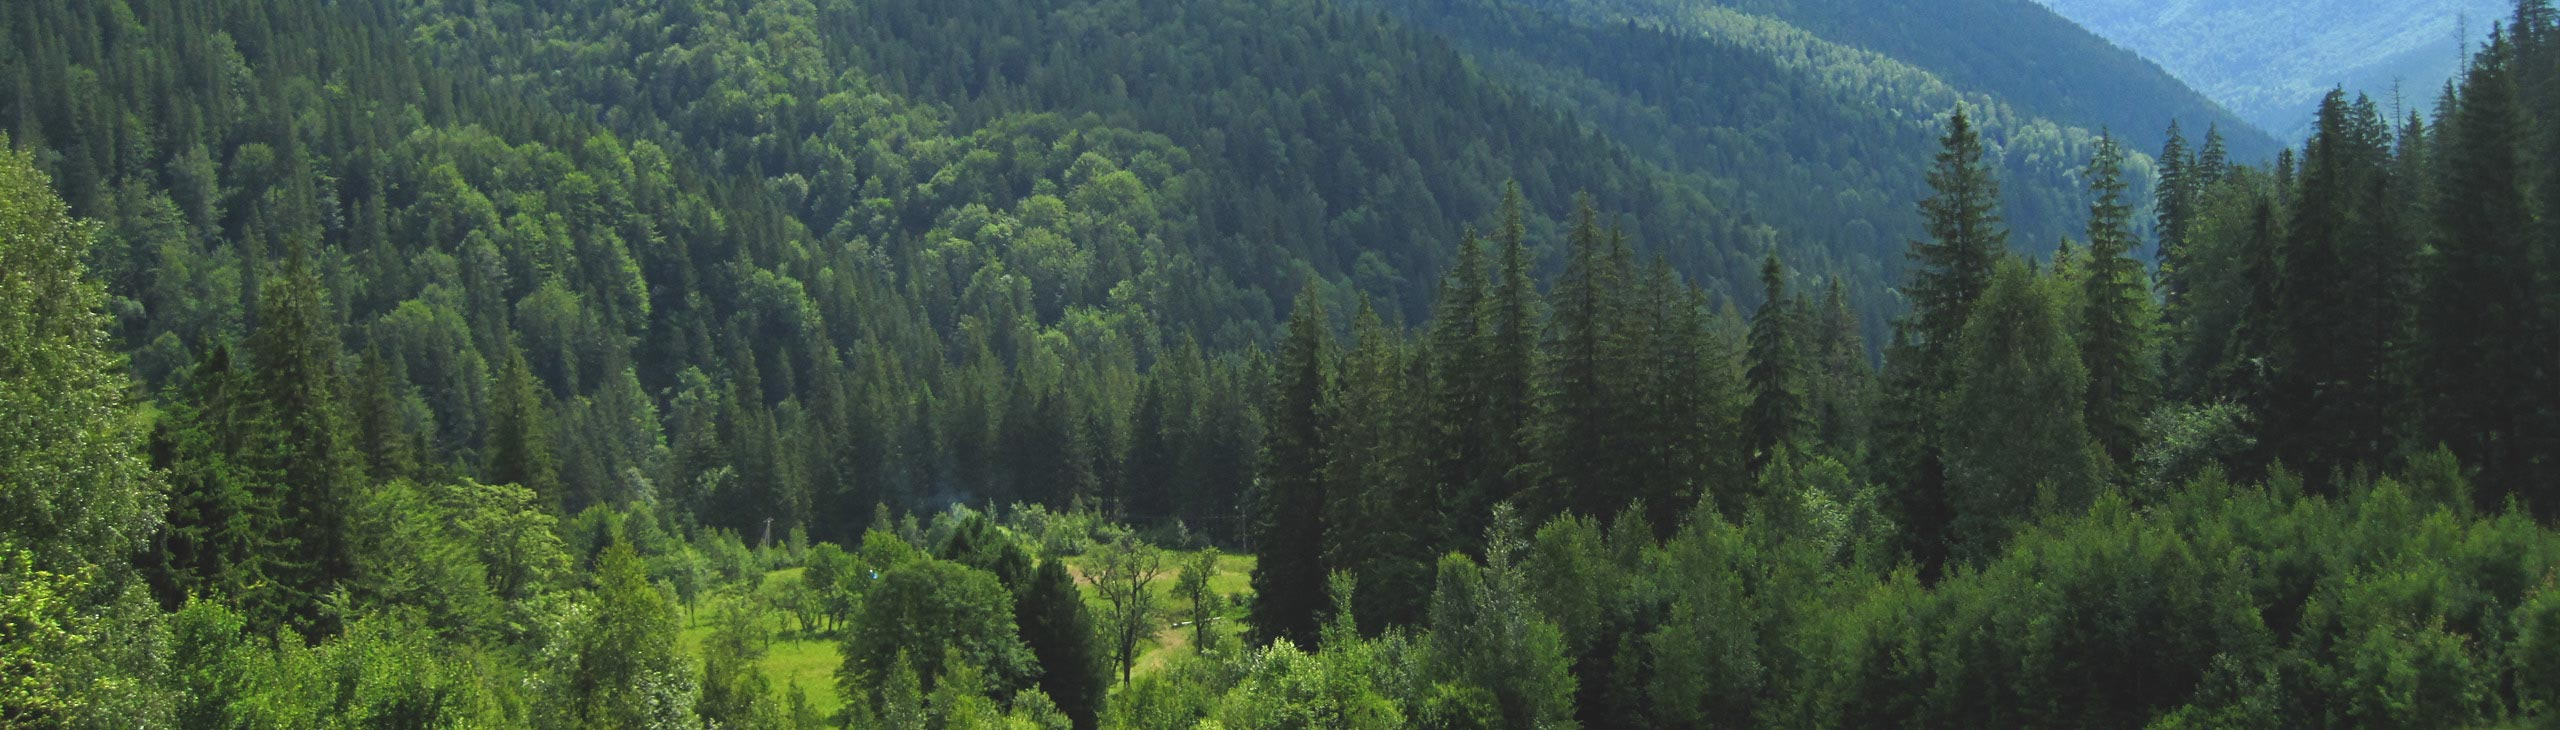 Green tourism in the Carpathians